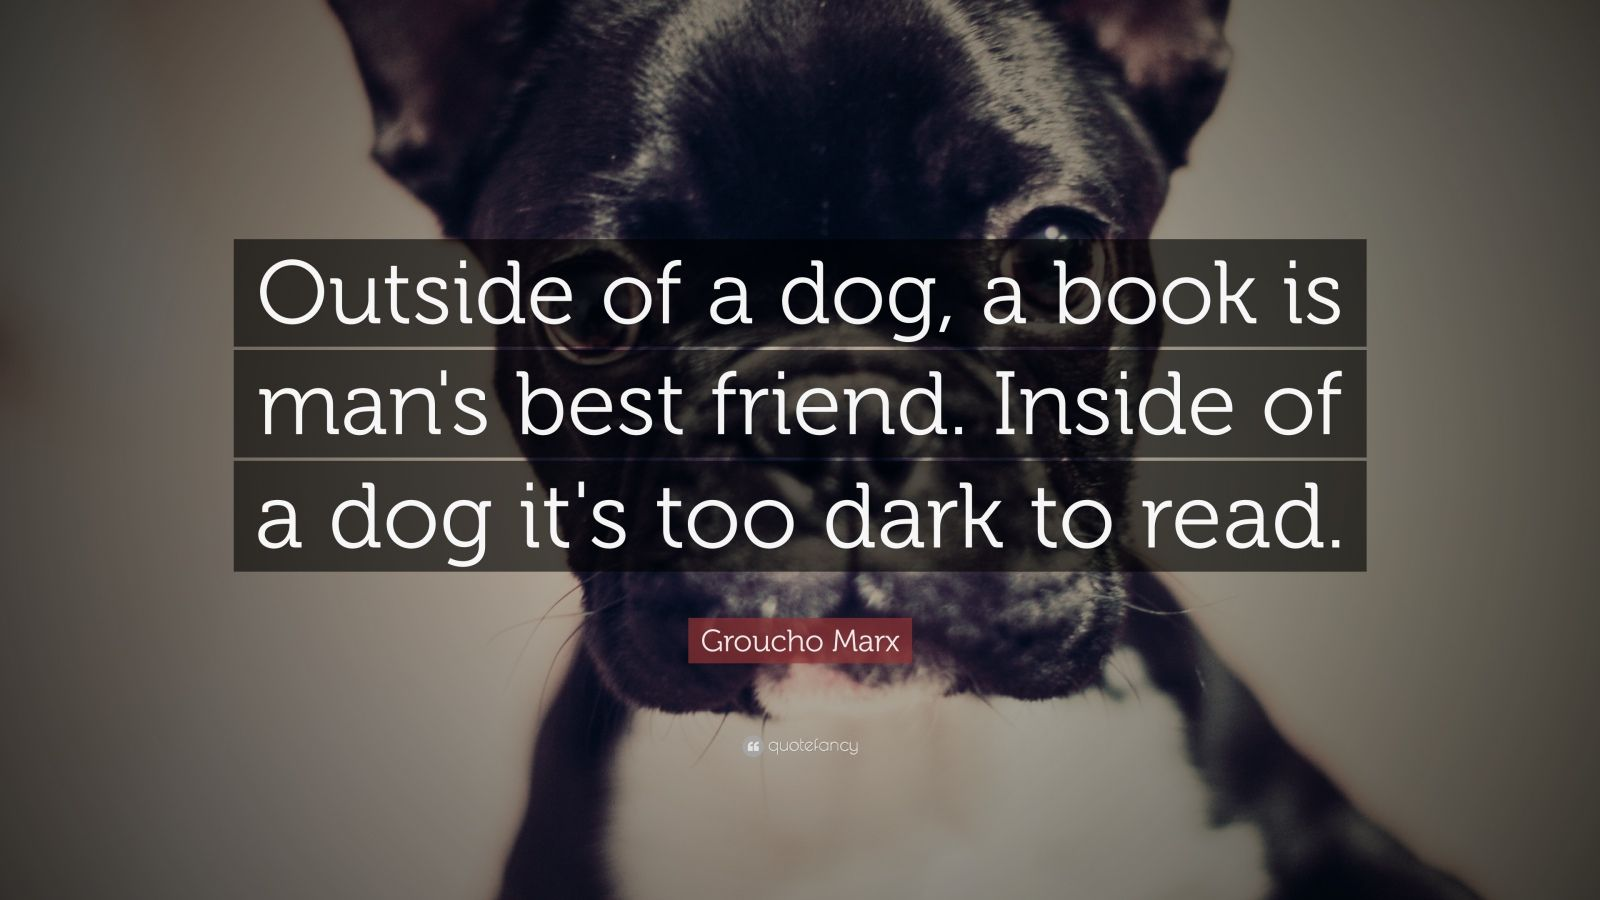 Turning 30 Quotes Wallpapers Groucho Marx Quote Outside Of A Dog A Book Is Man S